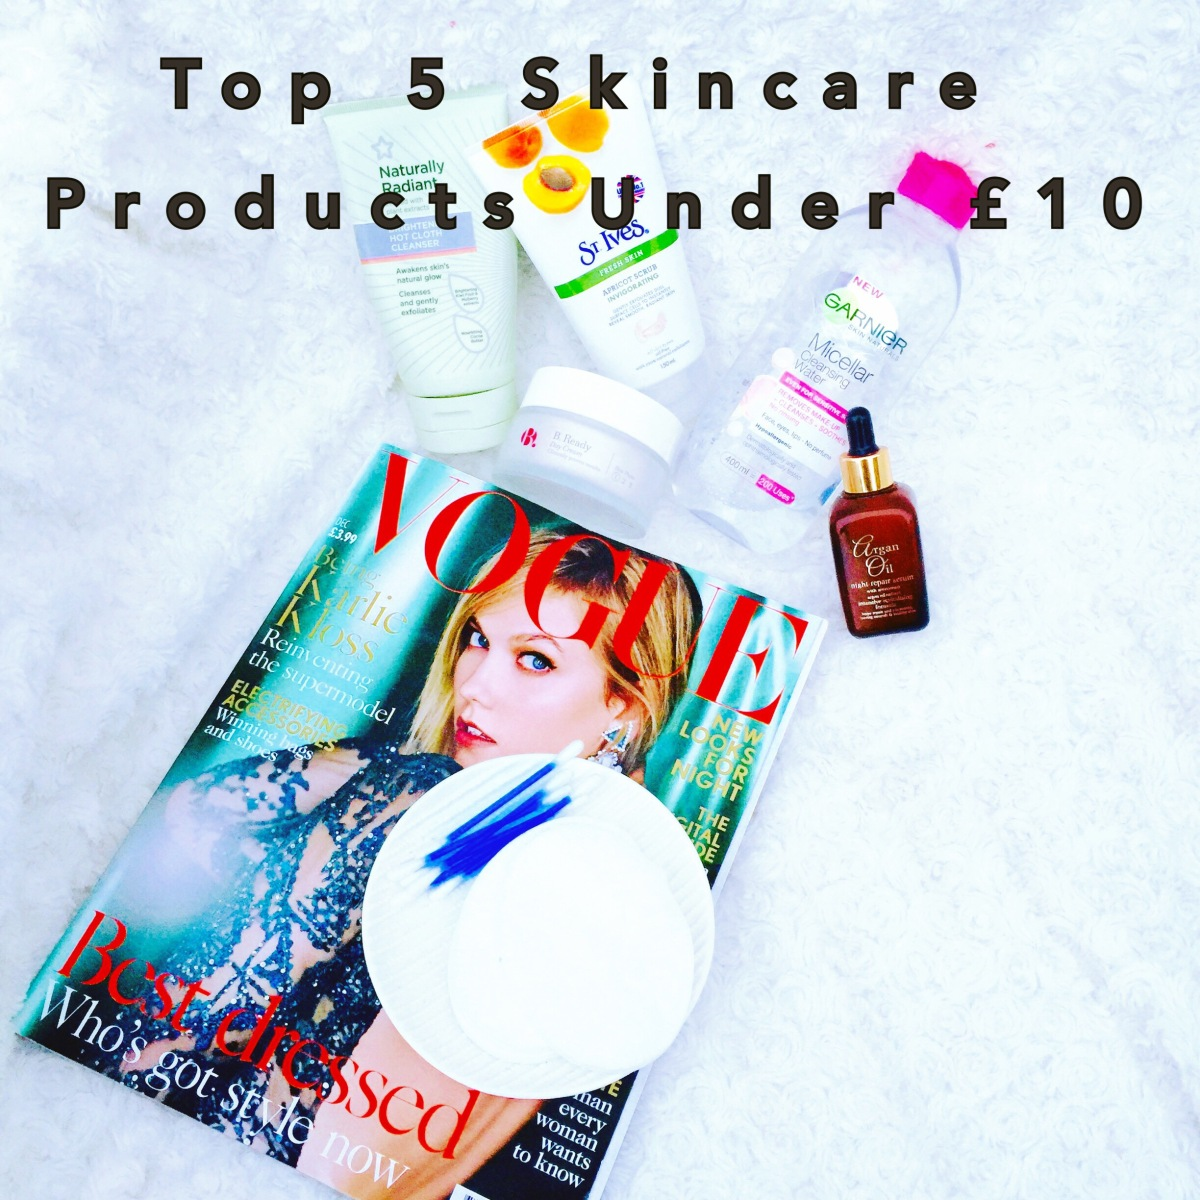 My Top 5 favourite Skincare products under £10